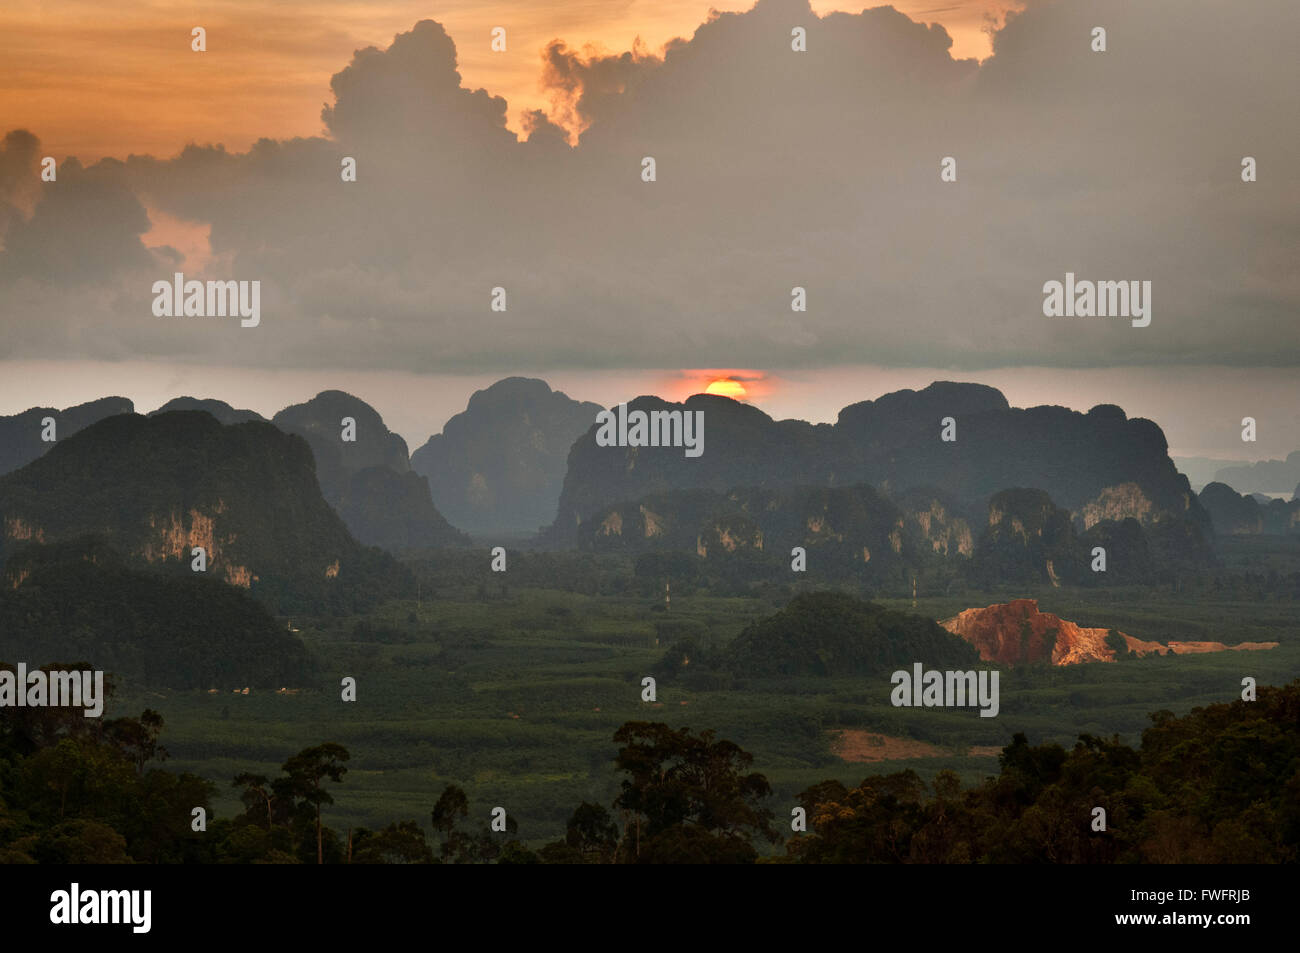 Sunset view of the beauty mountains from Buddhist shrine and statue on top of the mountain towards Tiger Cave Temple - Stock Image